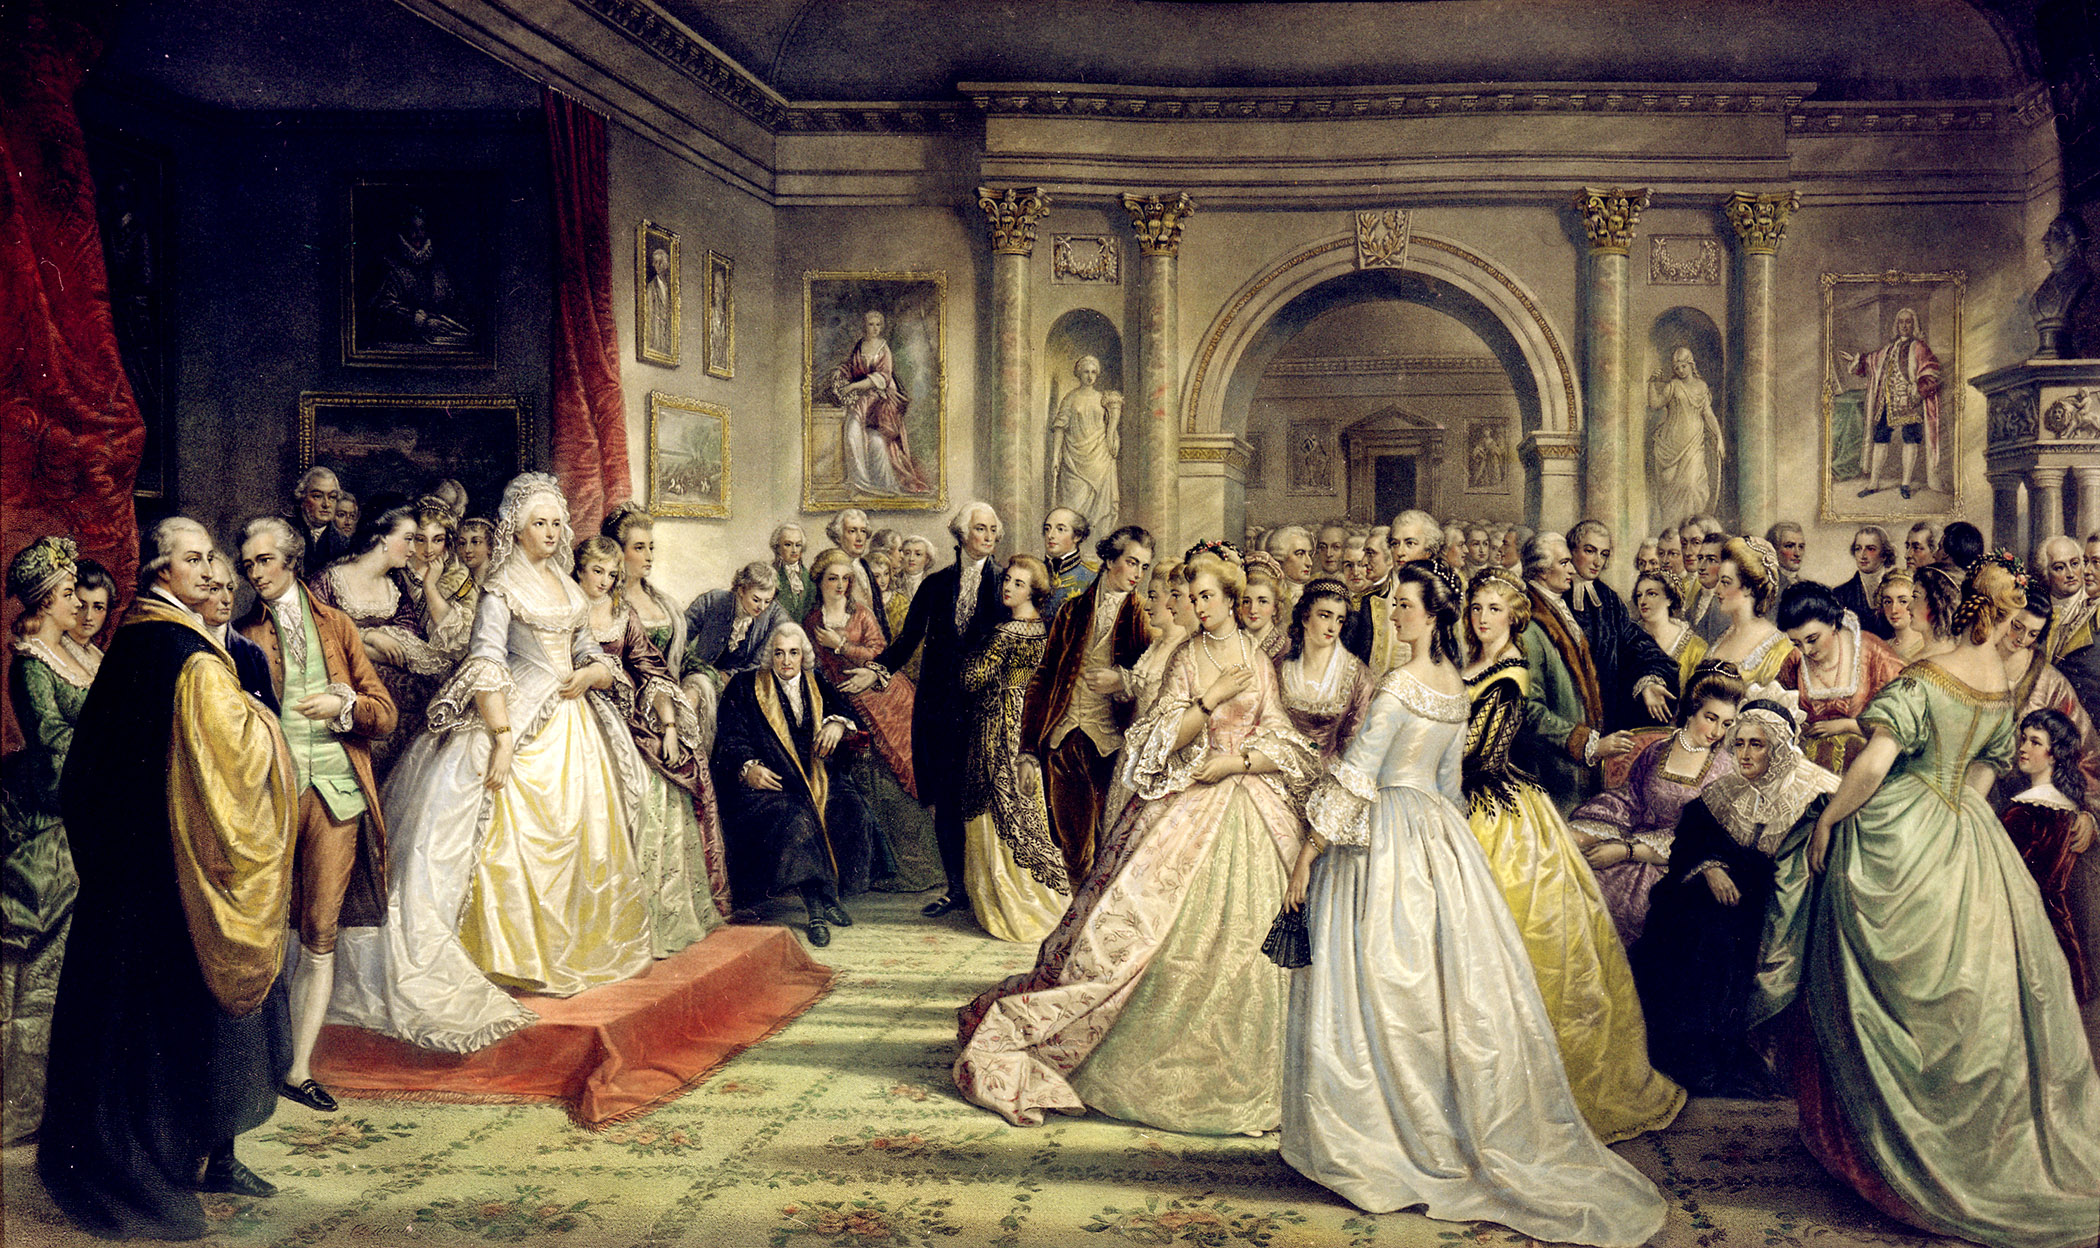 File:Brooklyn Museum - The Republican Court (Lady Washington's Reception Day) - Daniel Huntington - overall.jpg